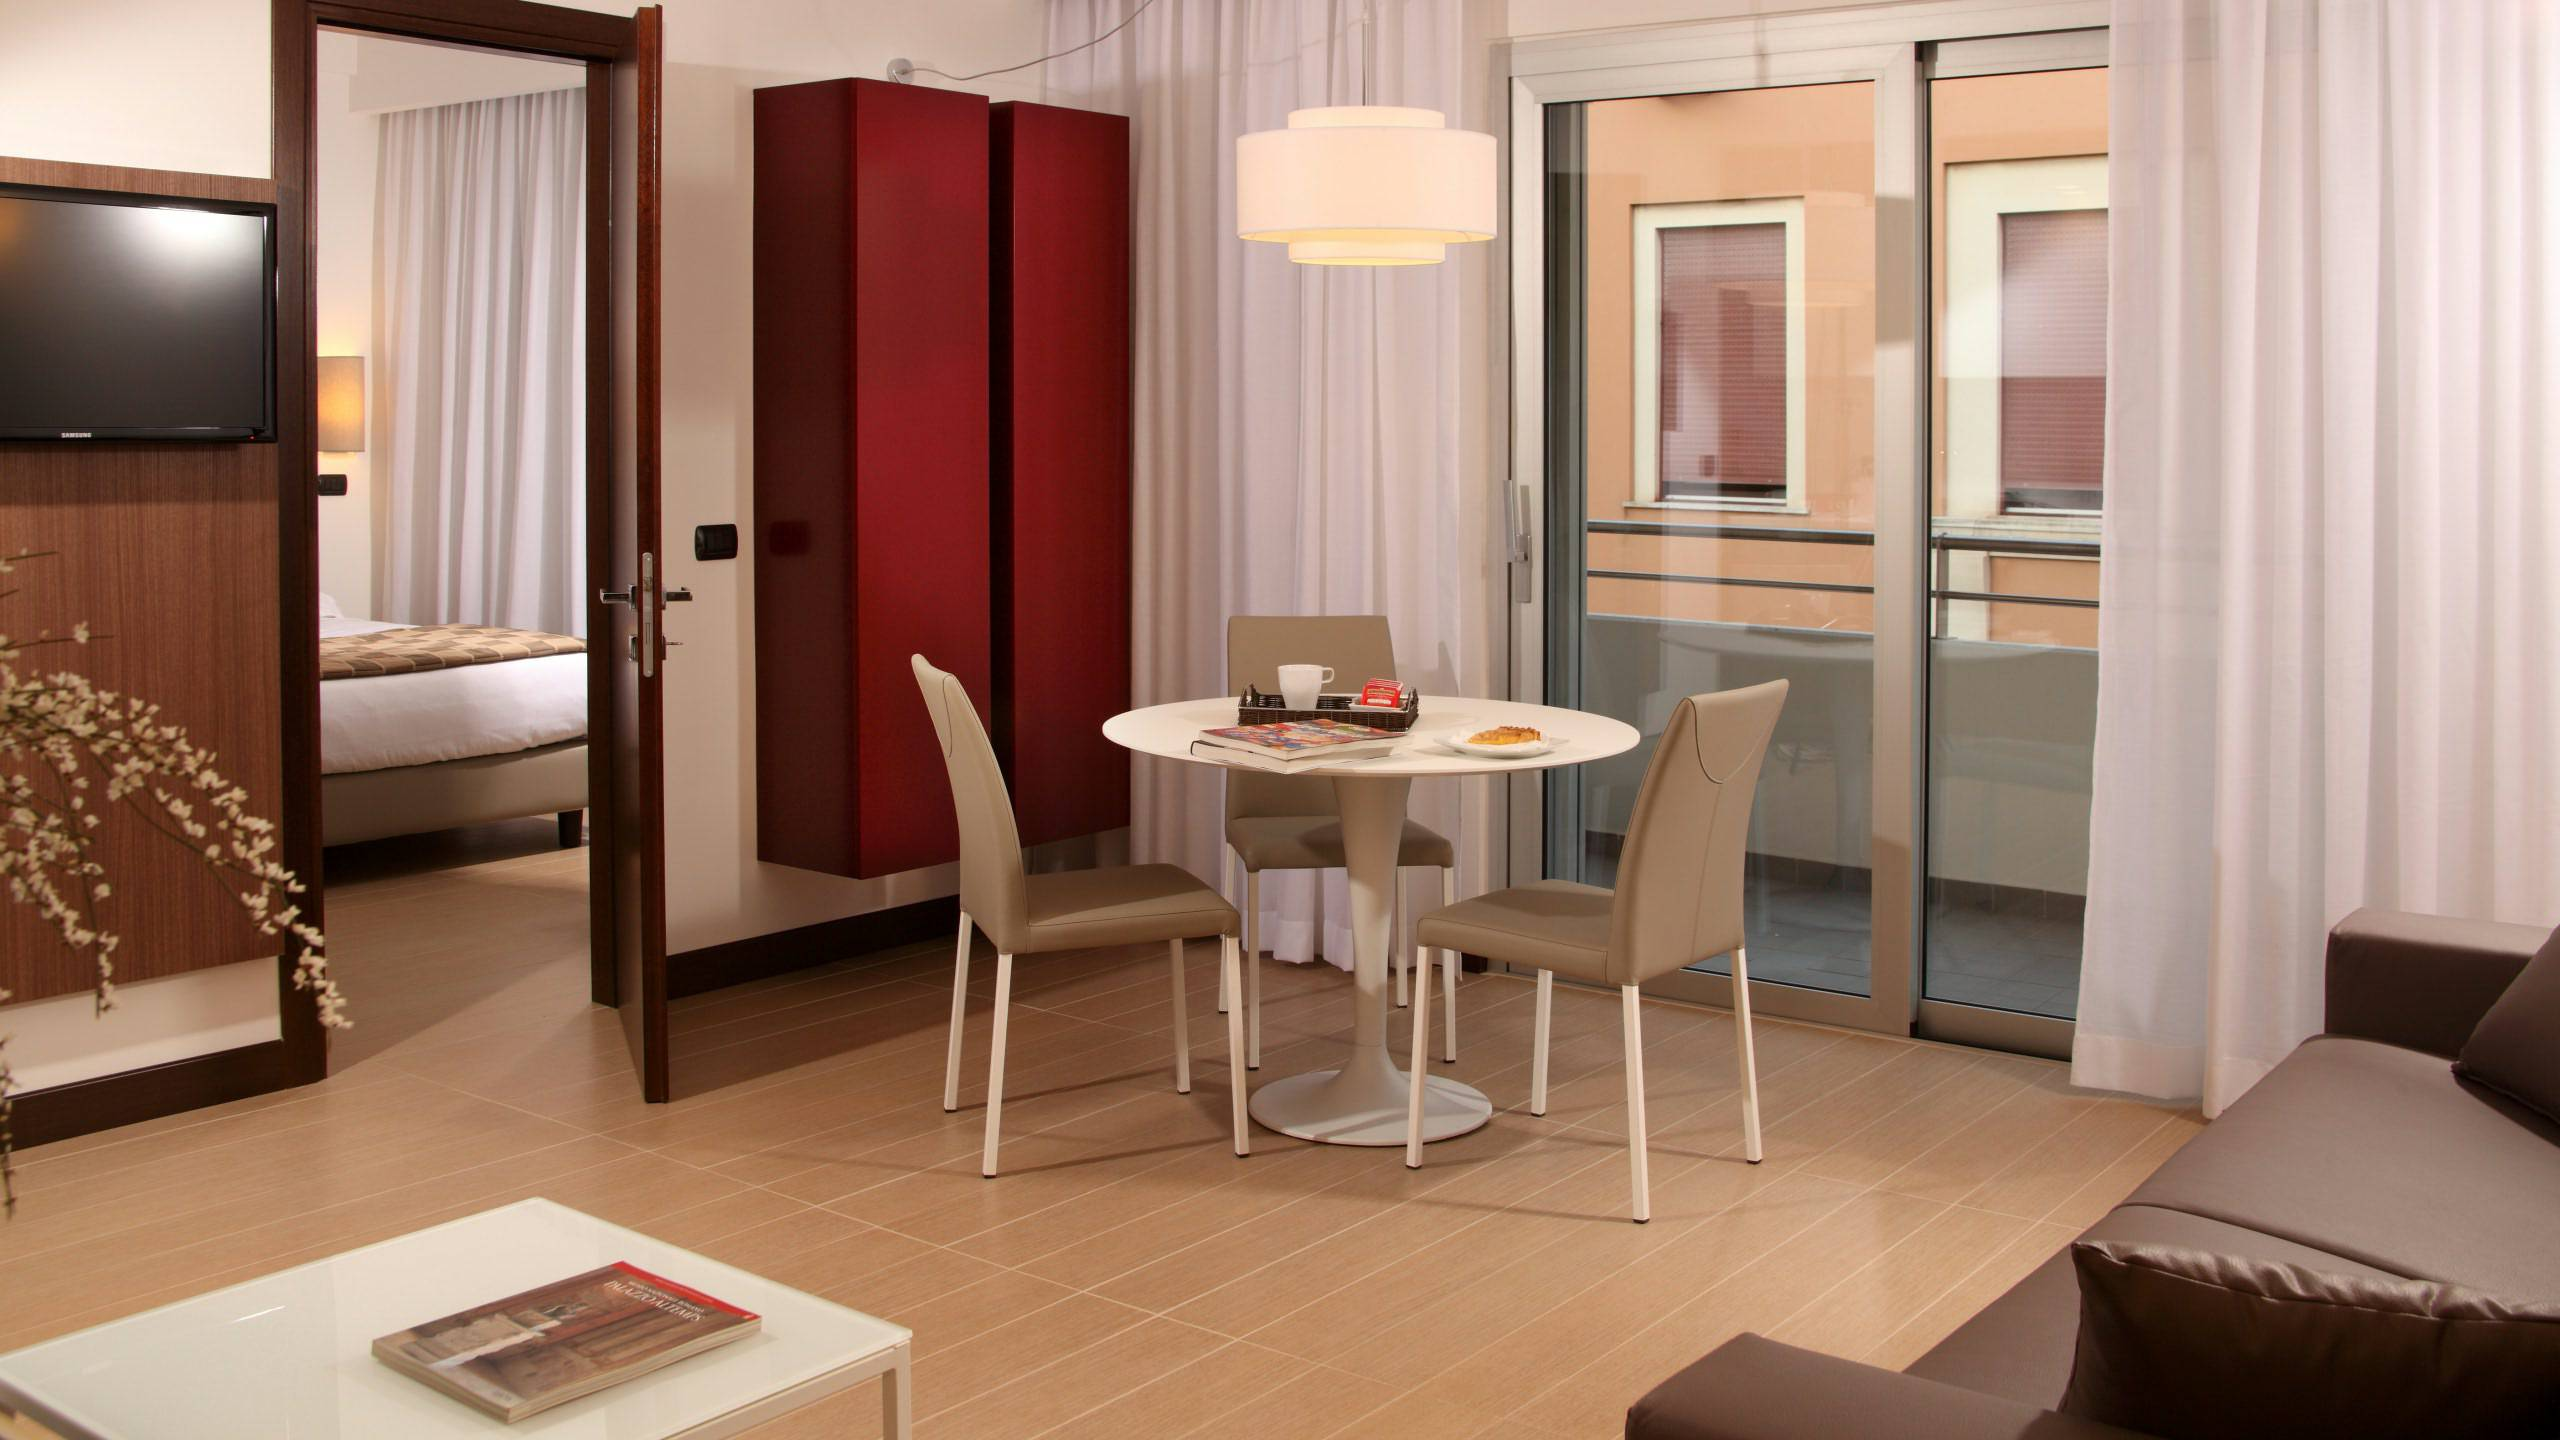 Residence hotel parioli roma le camere for Camera roma